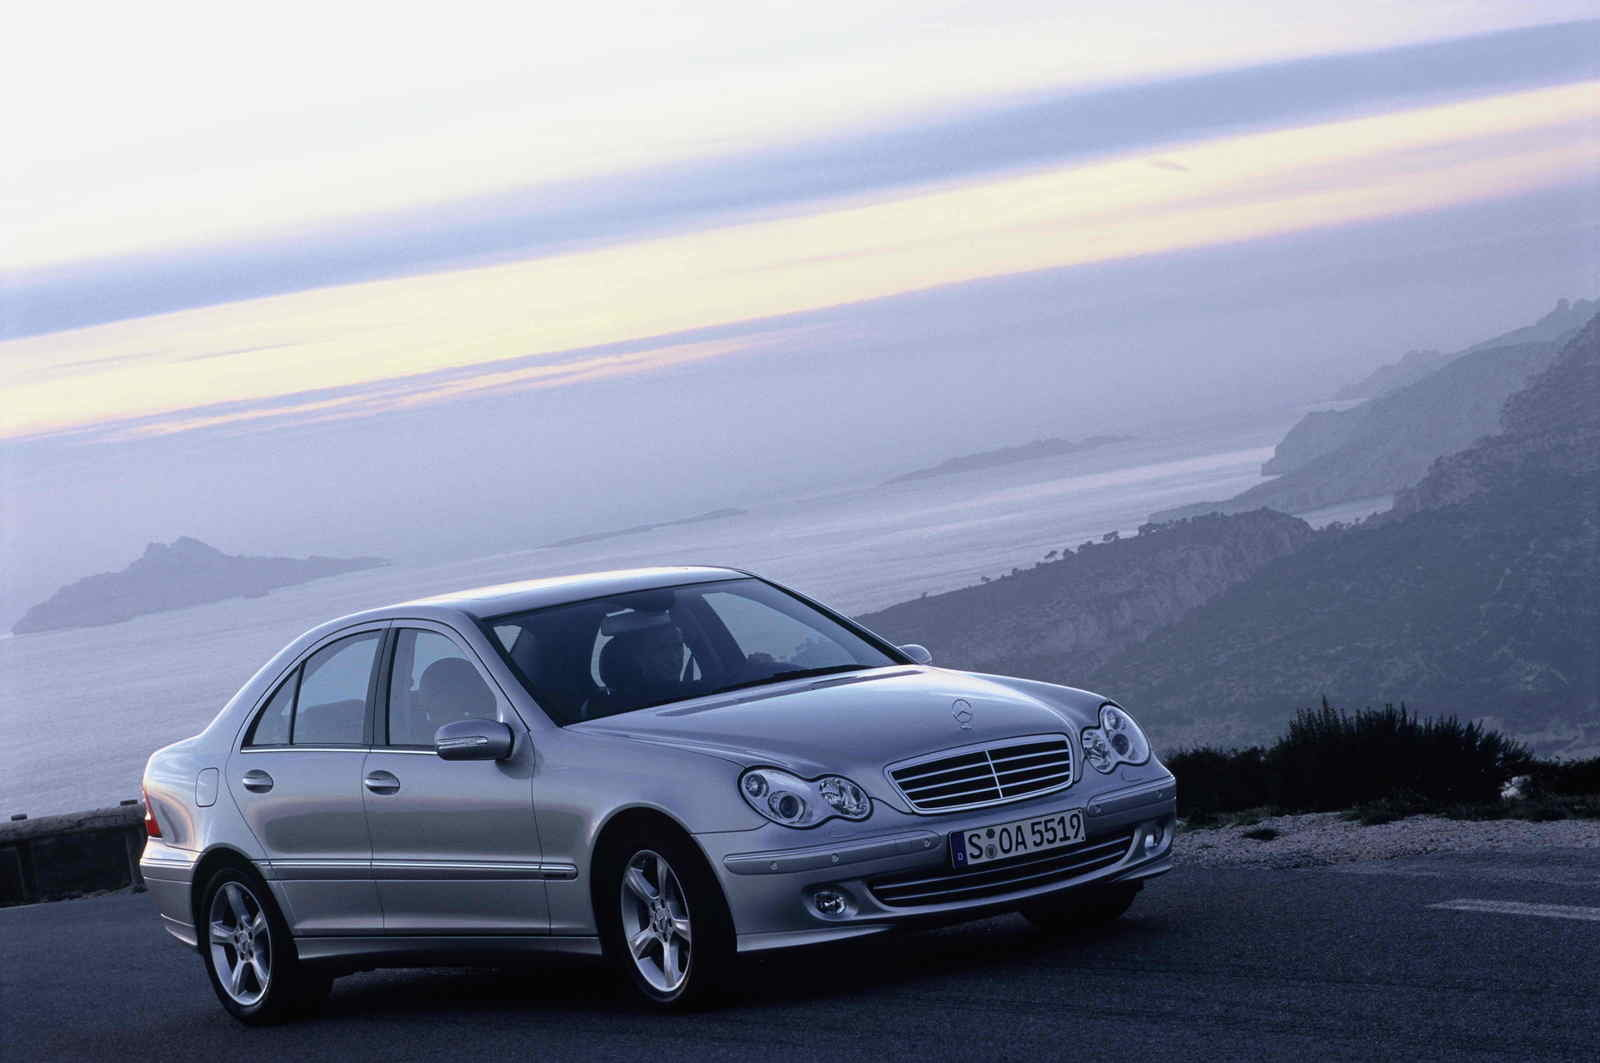 2000 2006 mercedes c class picture 120849 car review top speed. Black Bedroom Furniture Sets. Home Design Ideas